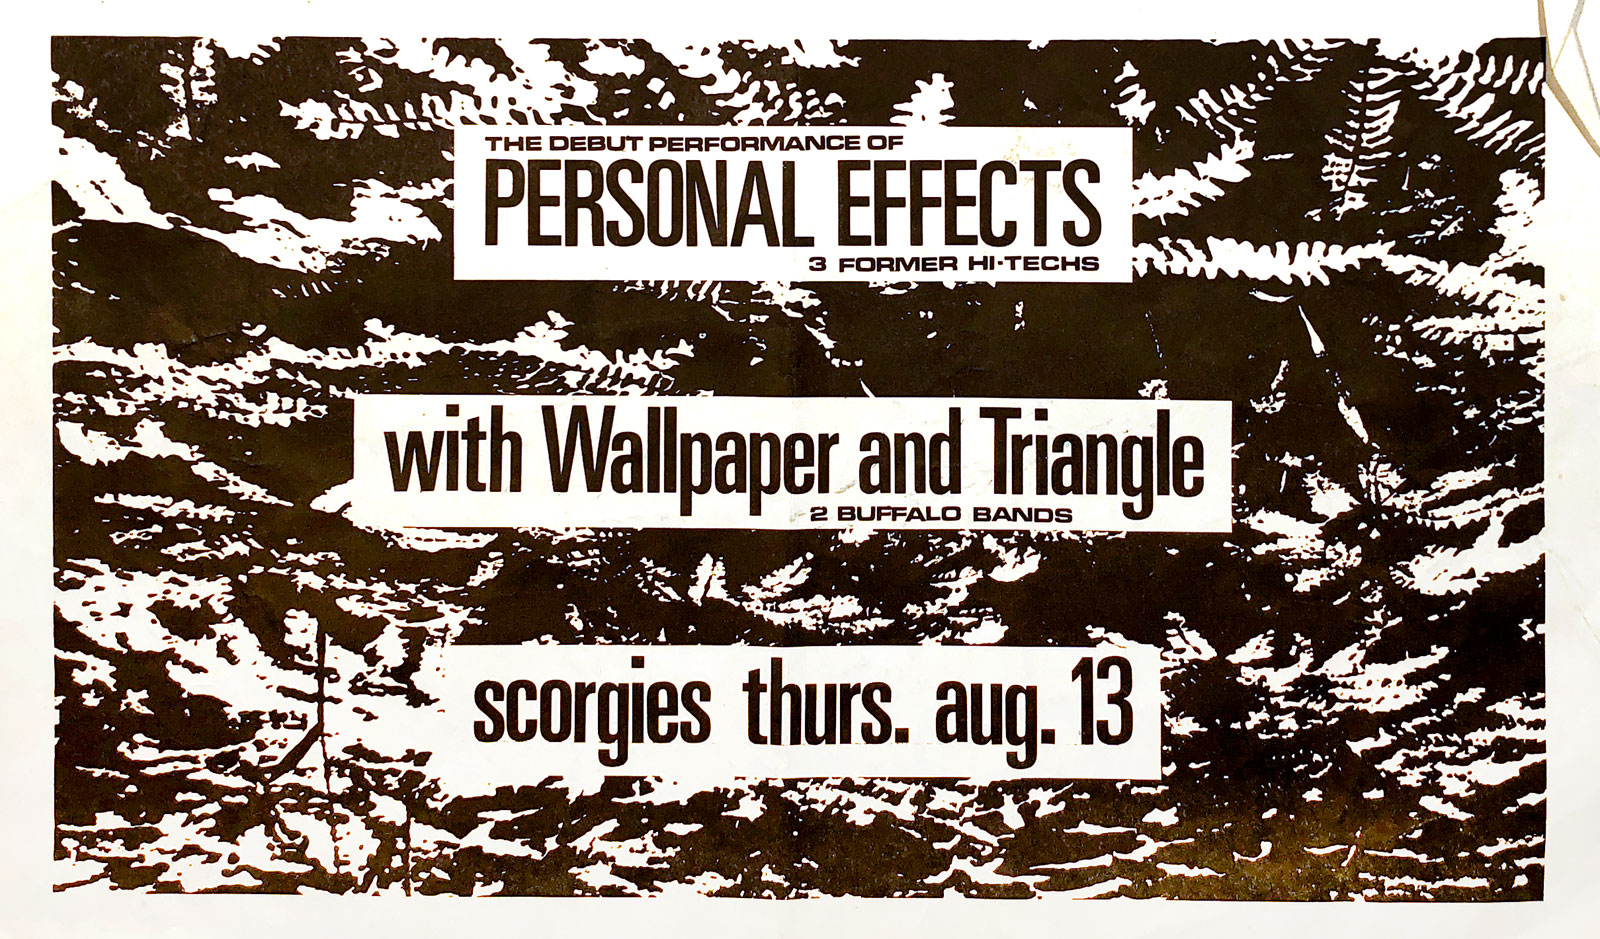 Poster for Personal Effects with Wallpaper and Triangle at Scorgie's in Rochester, New York on 08.13.1981